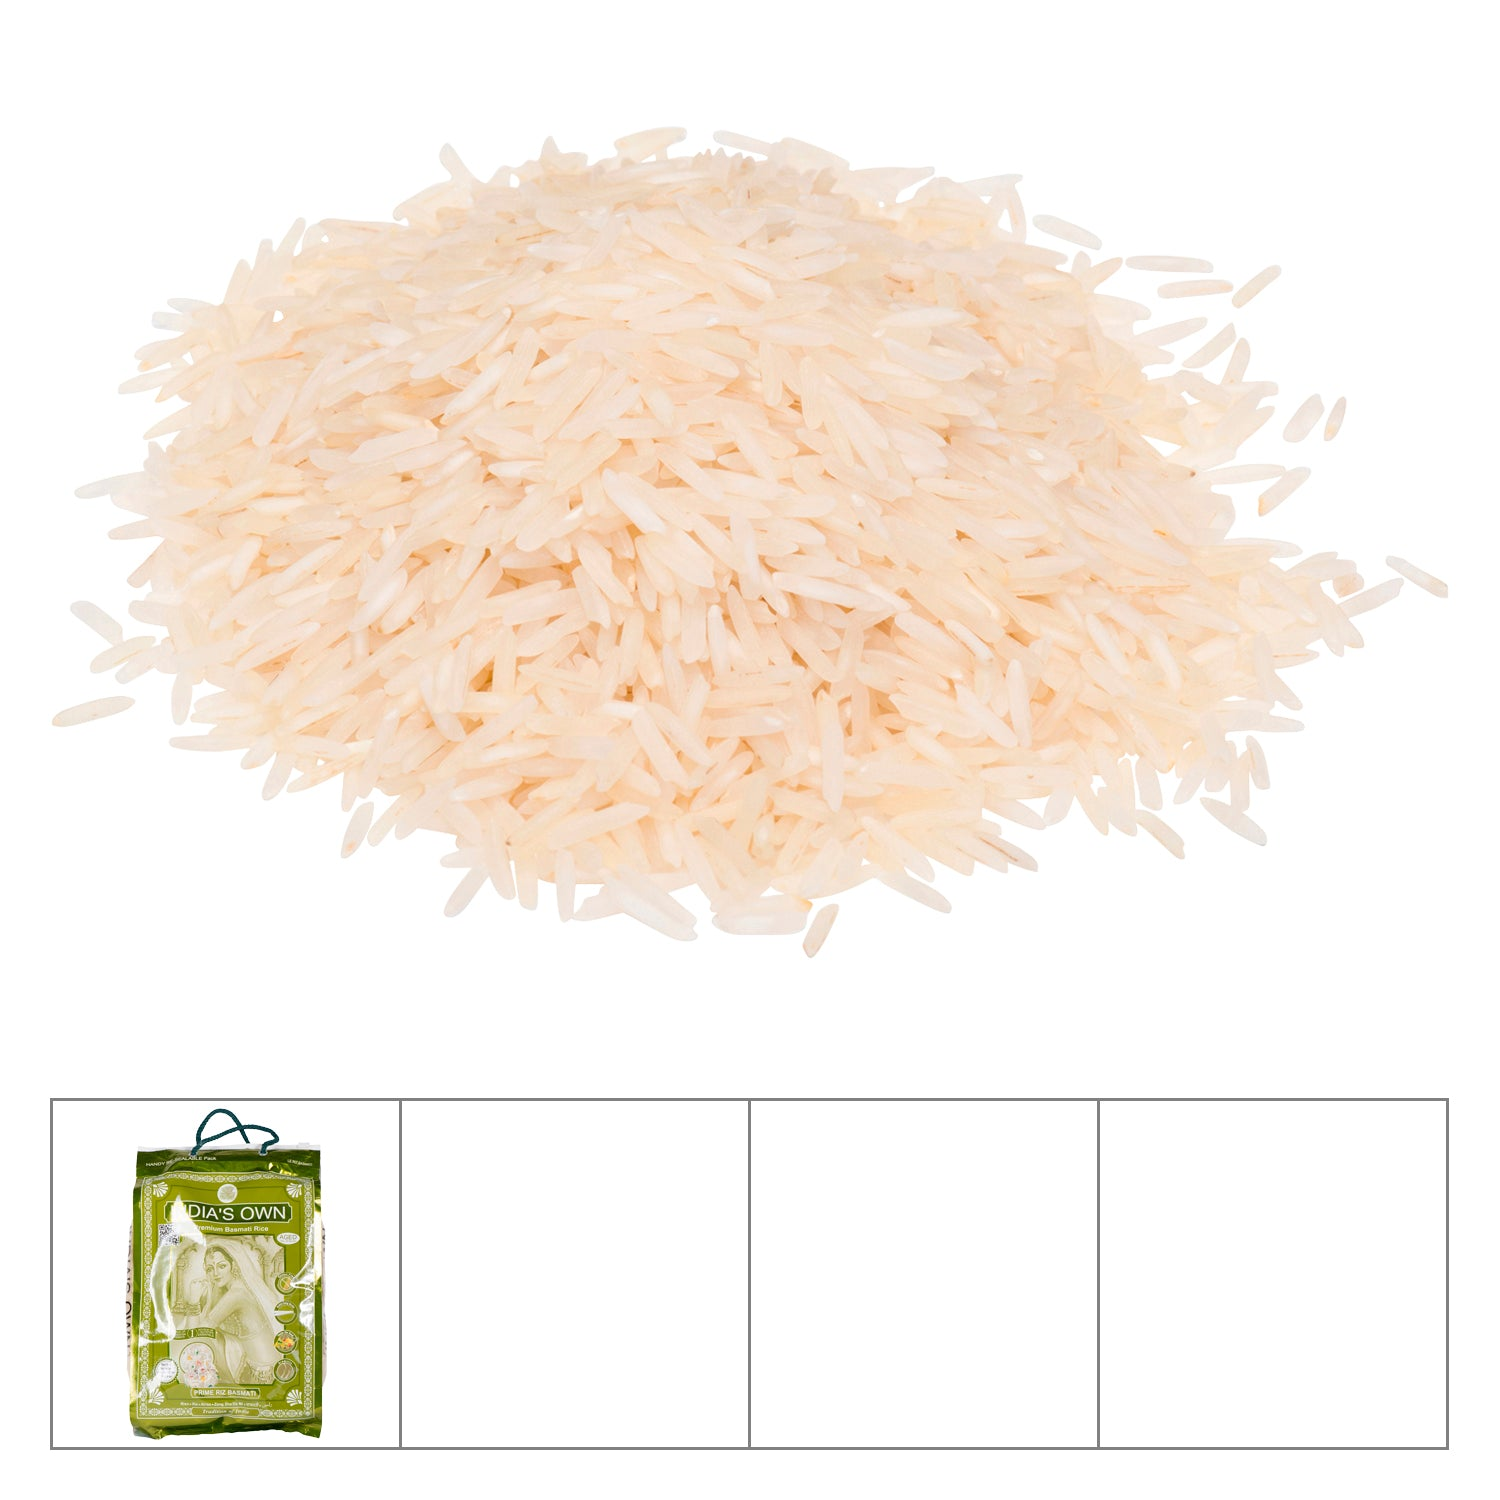 India's White Basmati Rice 10 lb - 1 Pack [$2.00/lb]